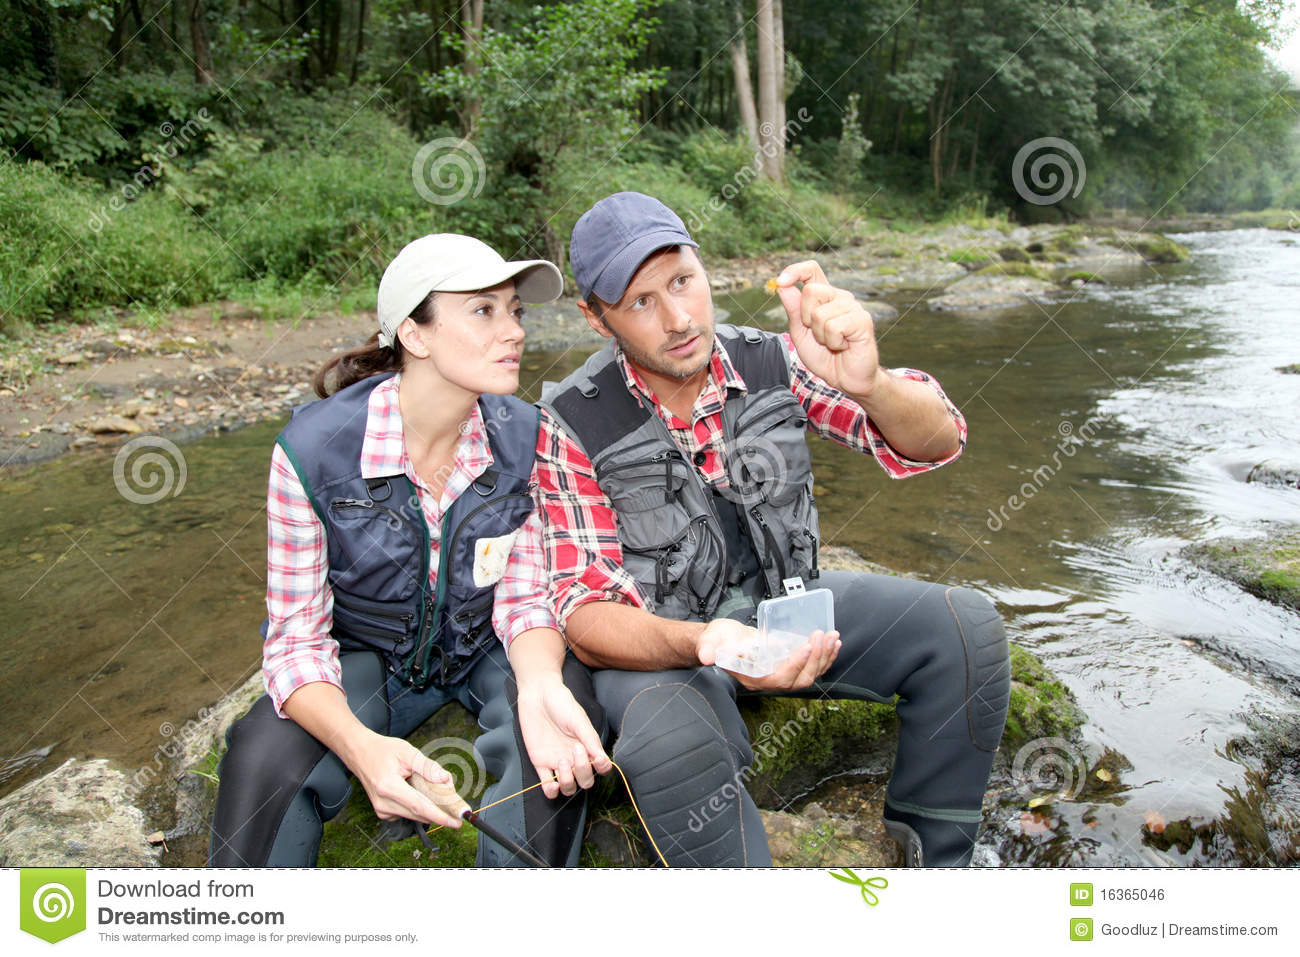 Ribolov na fotkama - Page 2 Couple-river-fishing-day-16365046